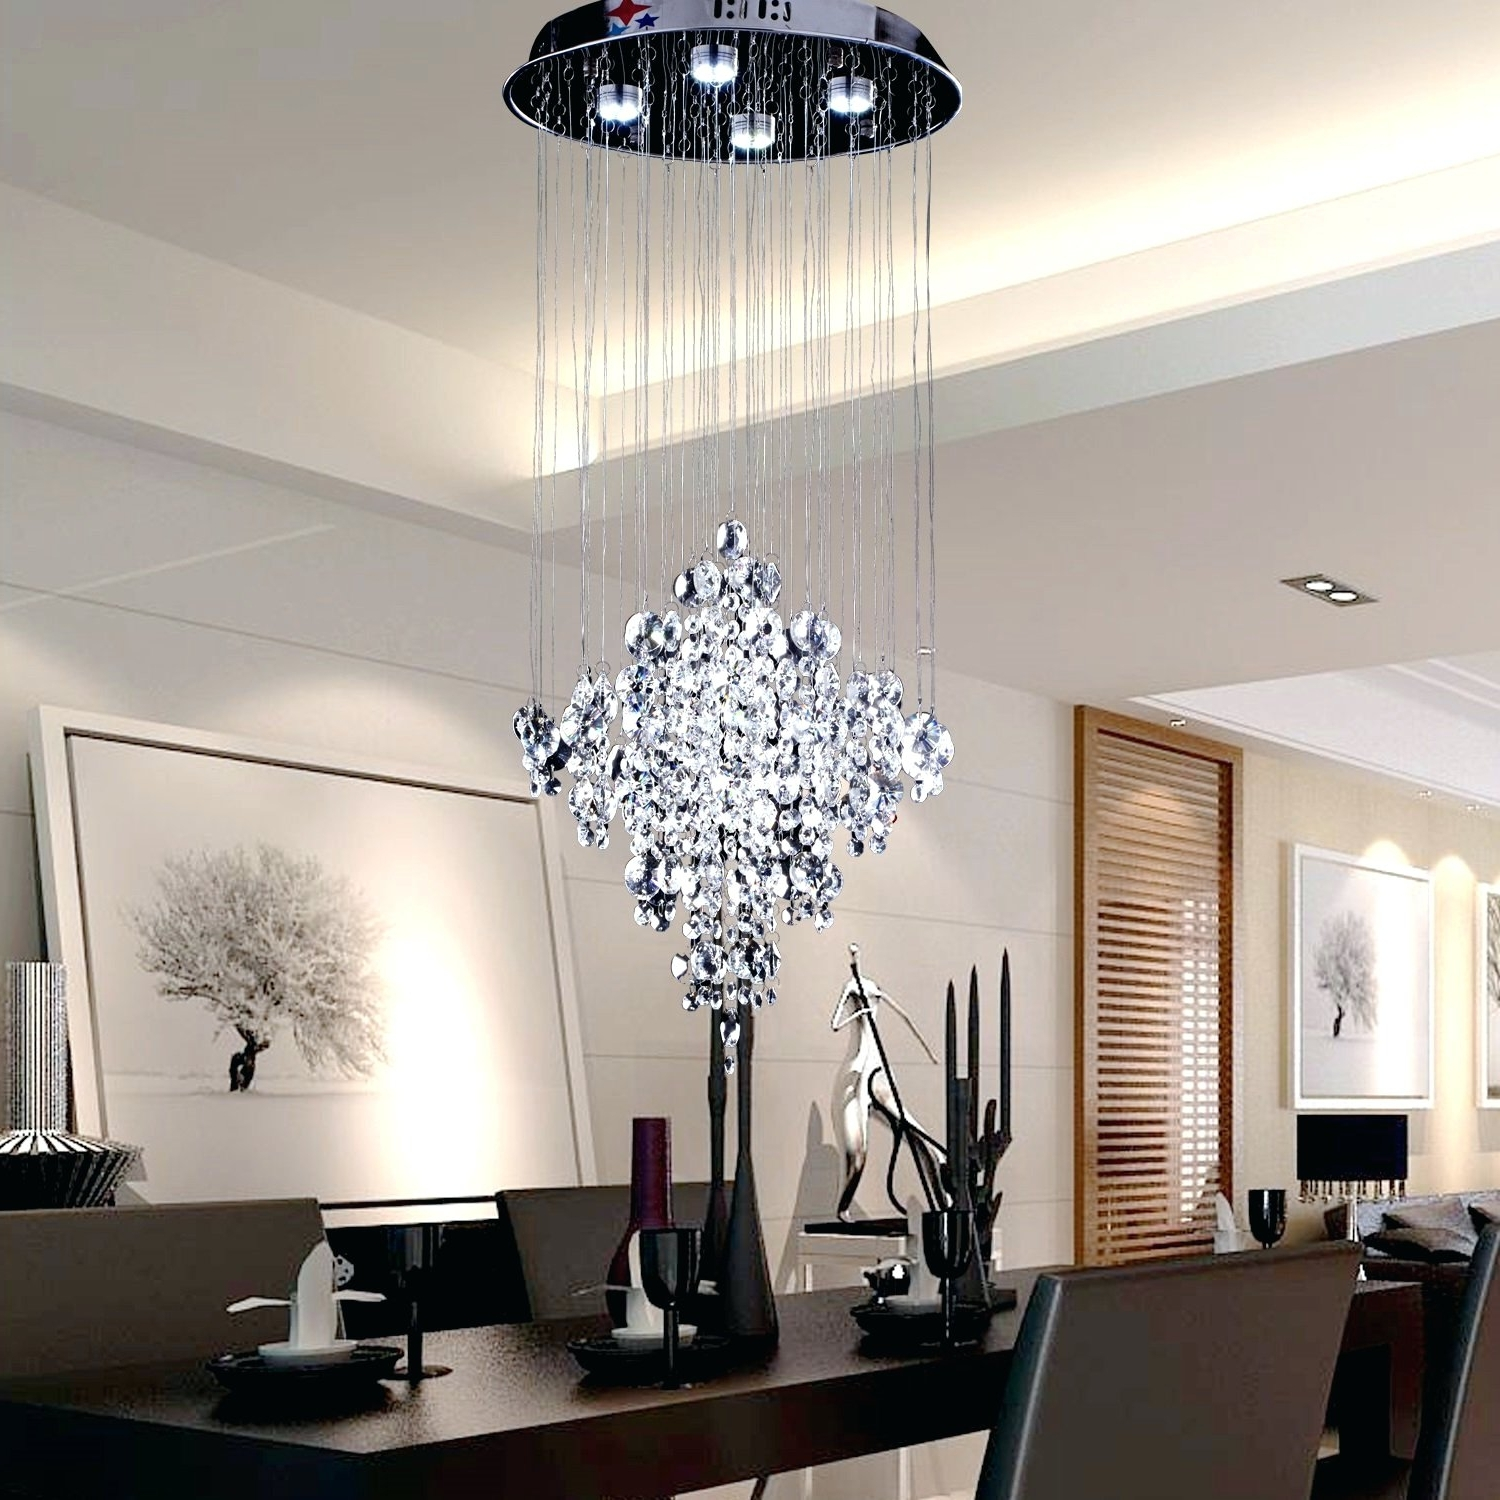 2017 Chandeliers Design : Fabulous Large Modern Chandeliers Contemporary Inside Large Modern Chandeliers (Gallery 11 of 15)